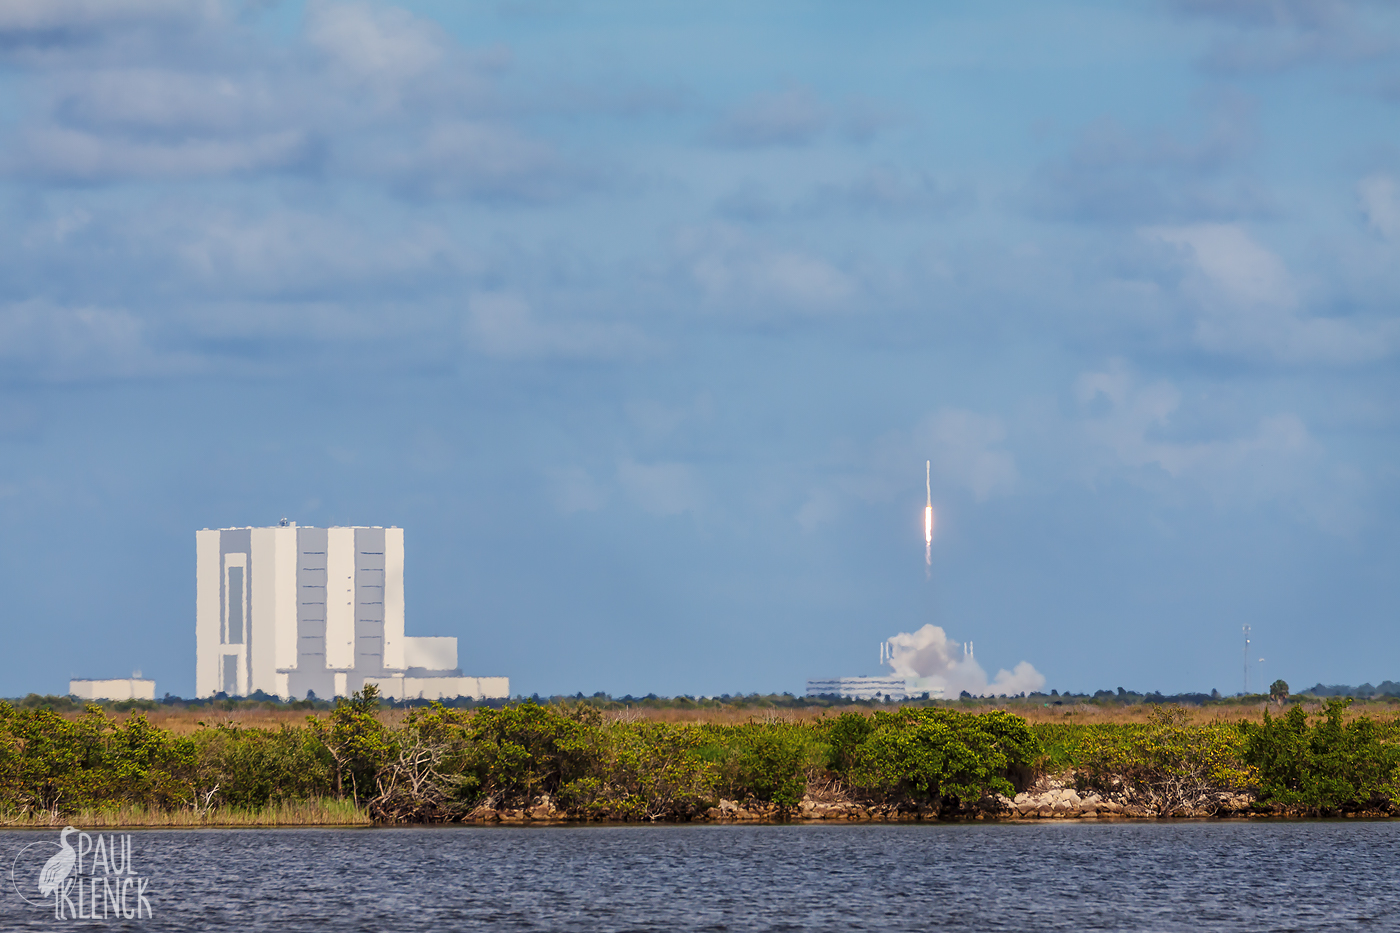 Vehicle Assembly Building and Space X launch